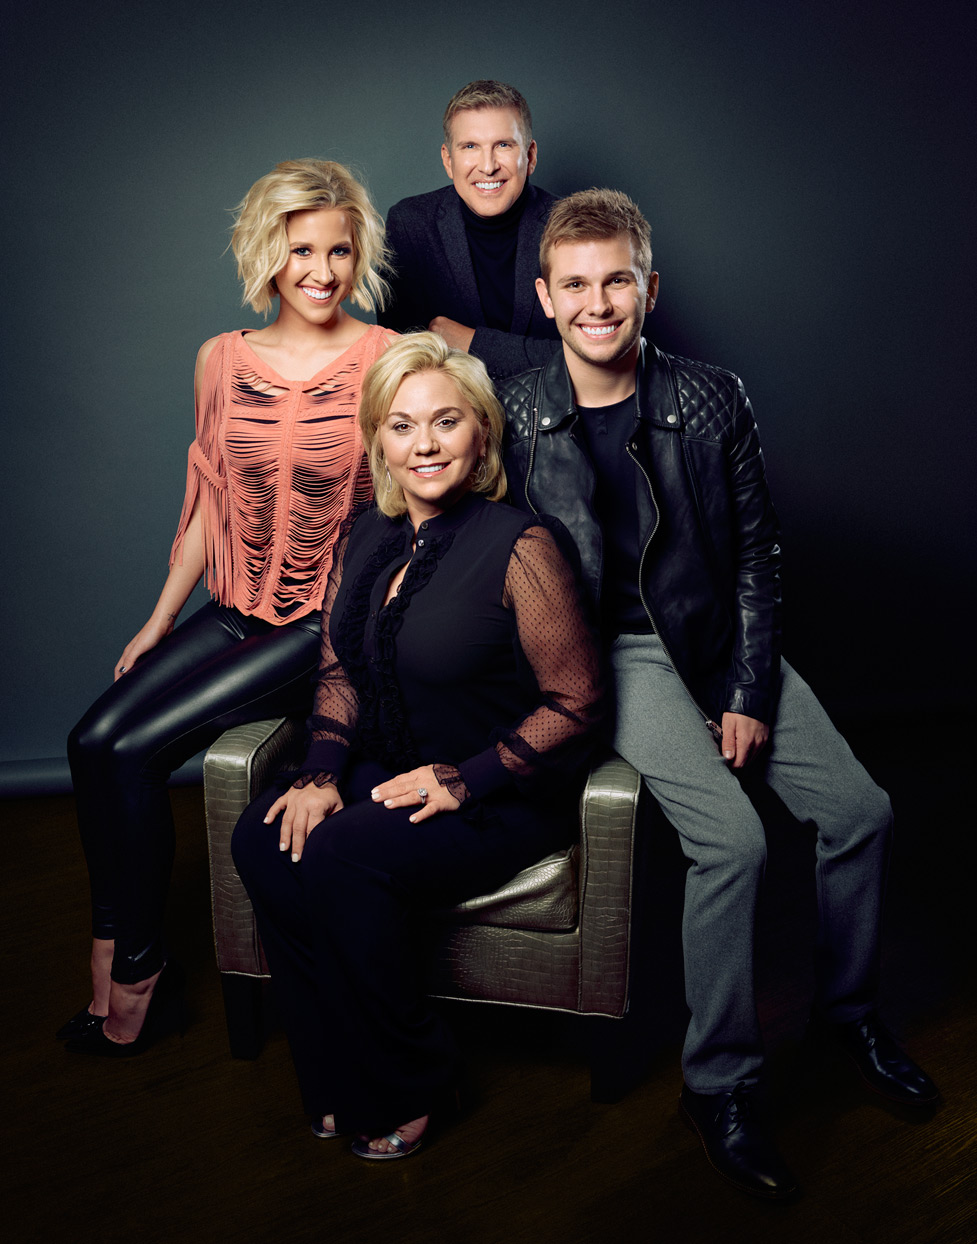 Mark DeLong - Celebrity Photographer - Actor and Actress family photo.